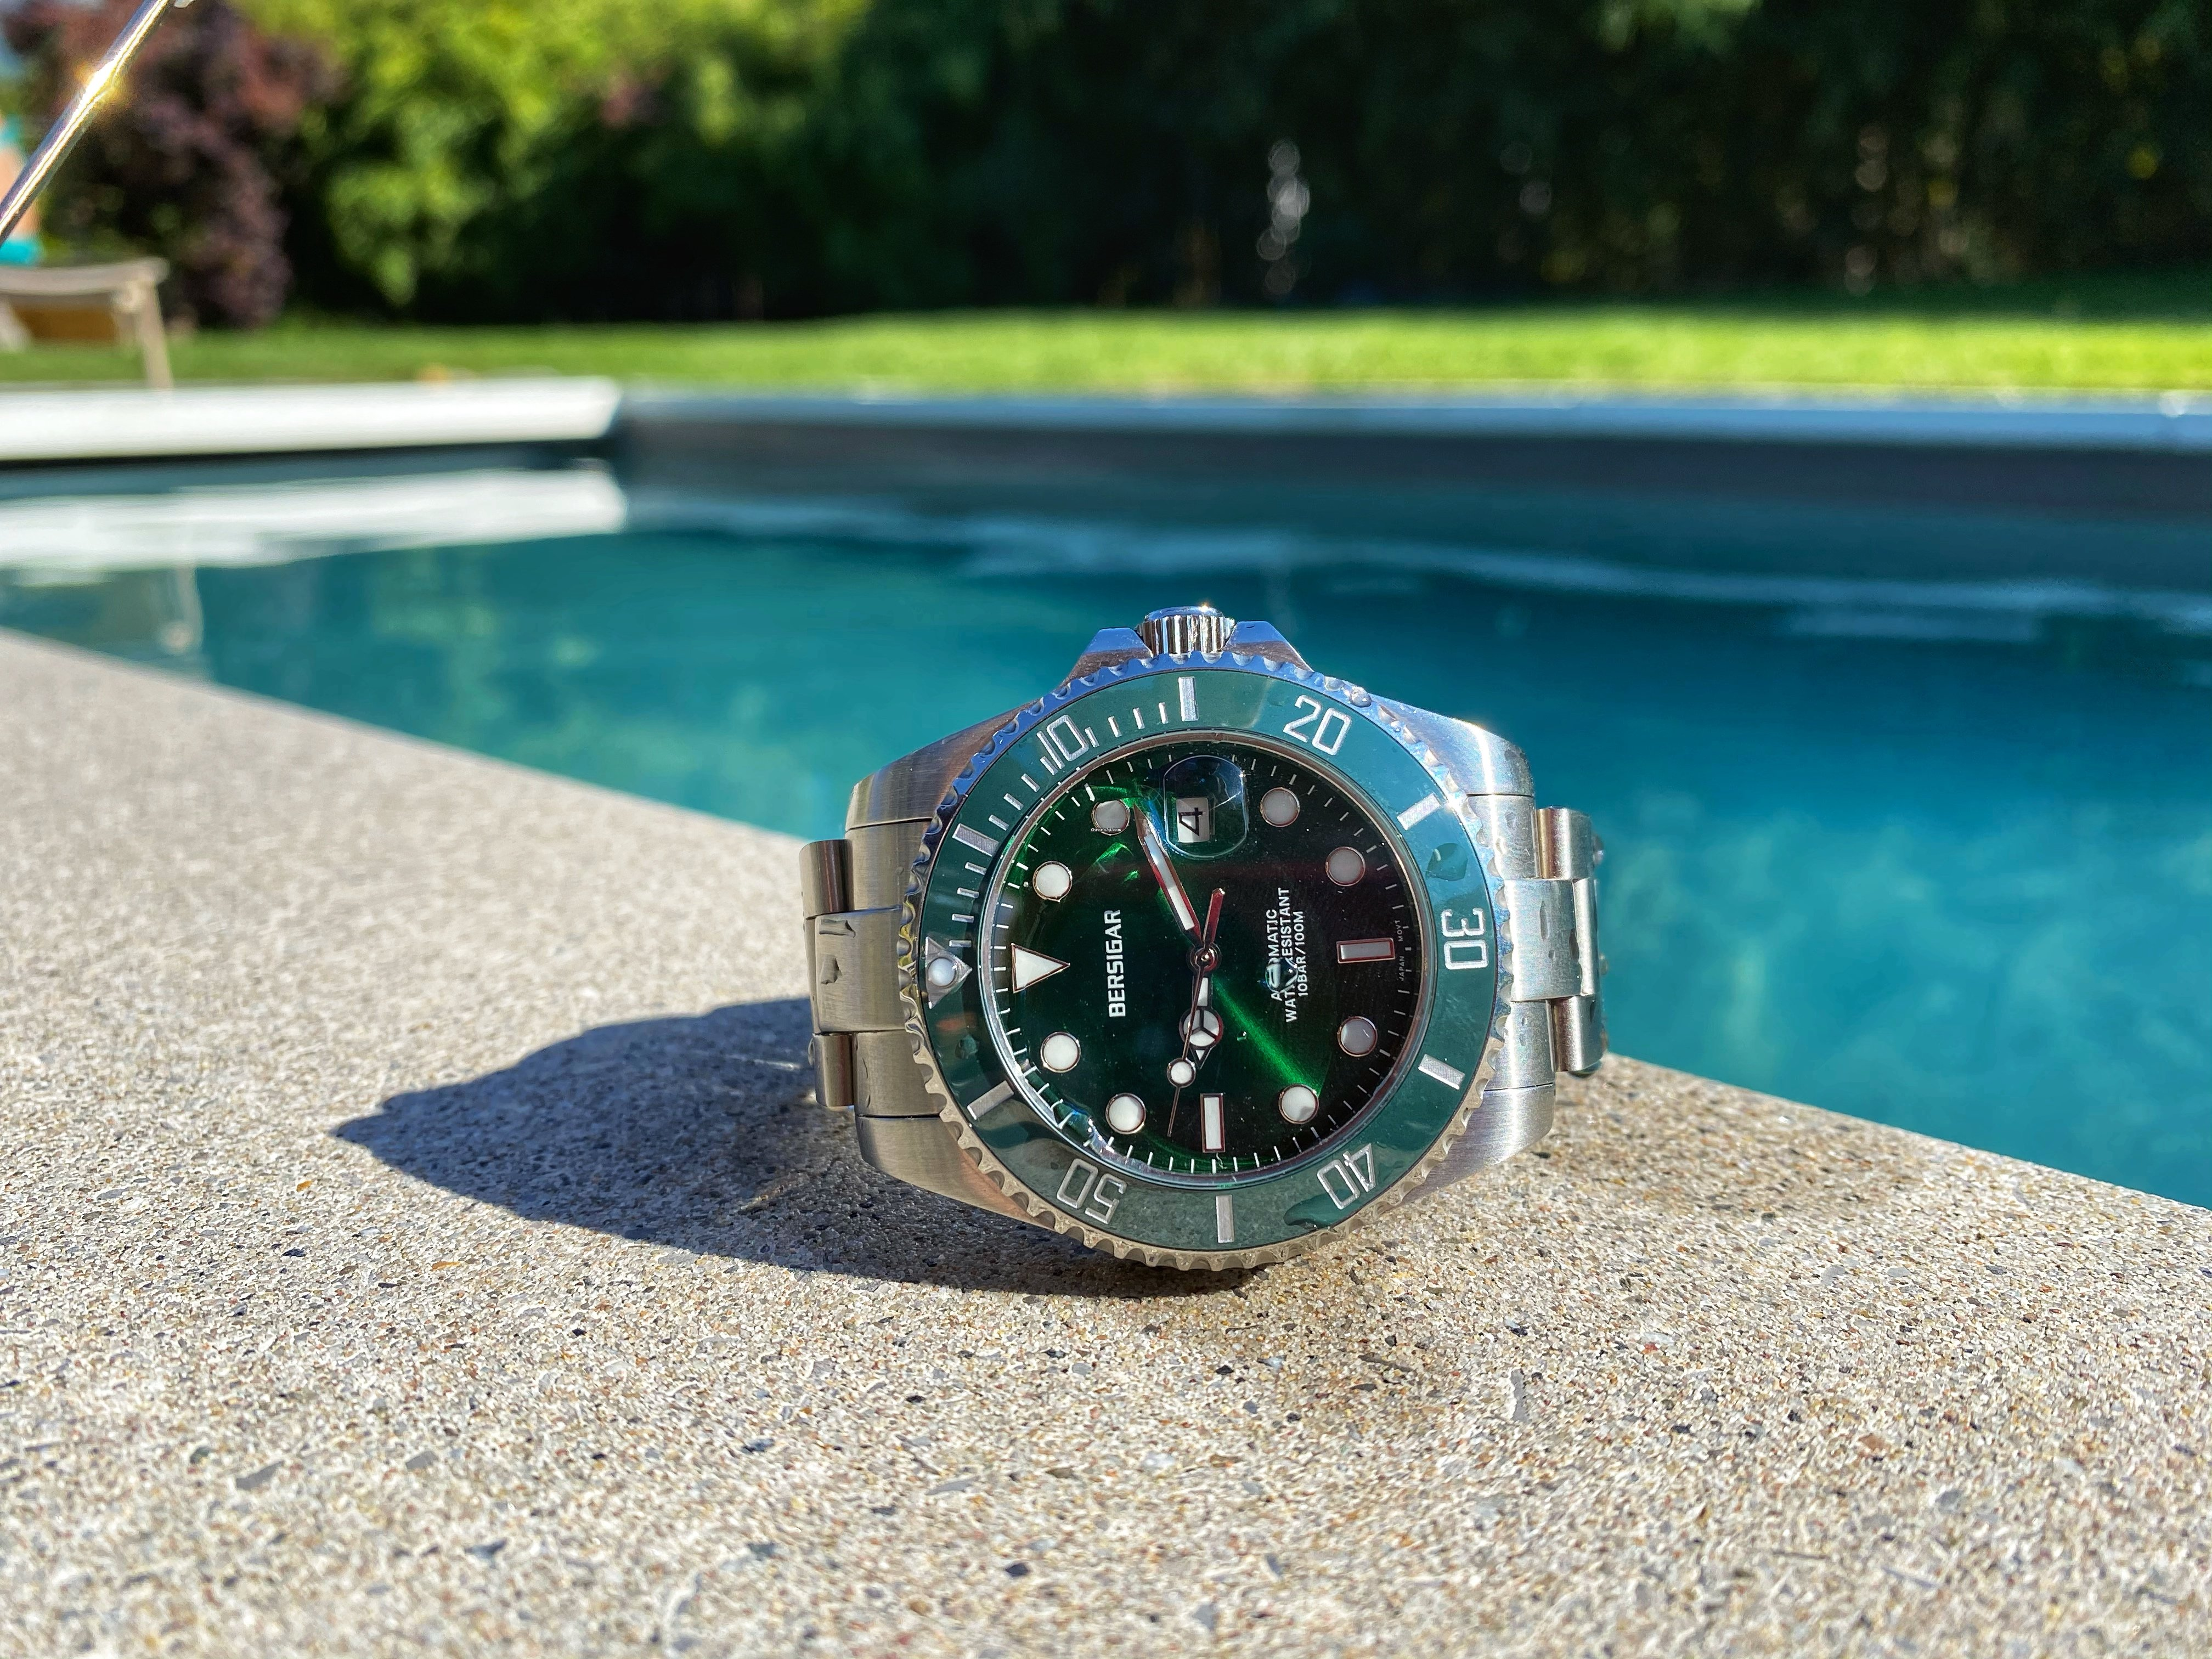 Bersigar Pagani Design Submariner Green Hulk For C 222 For Sale From A Private Seller On Chrono24